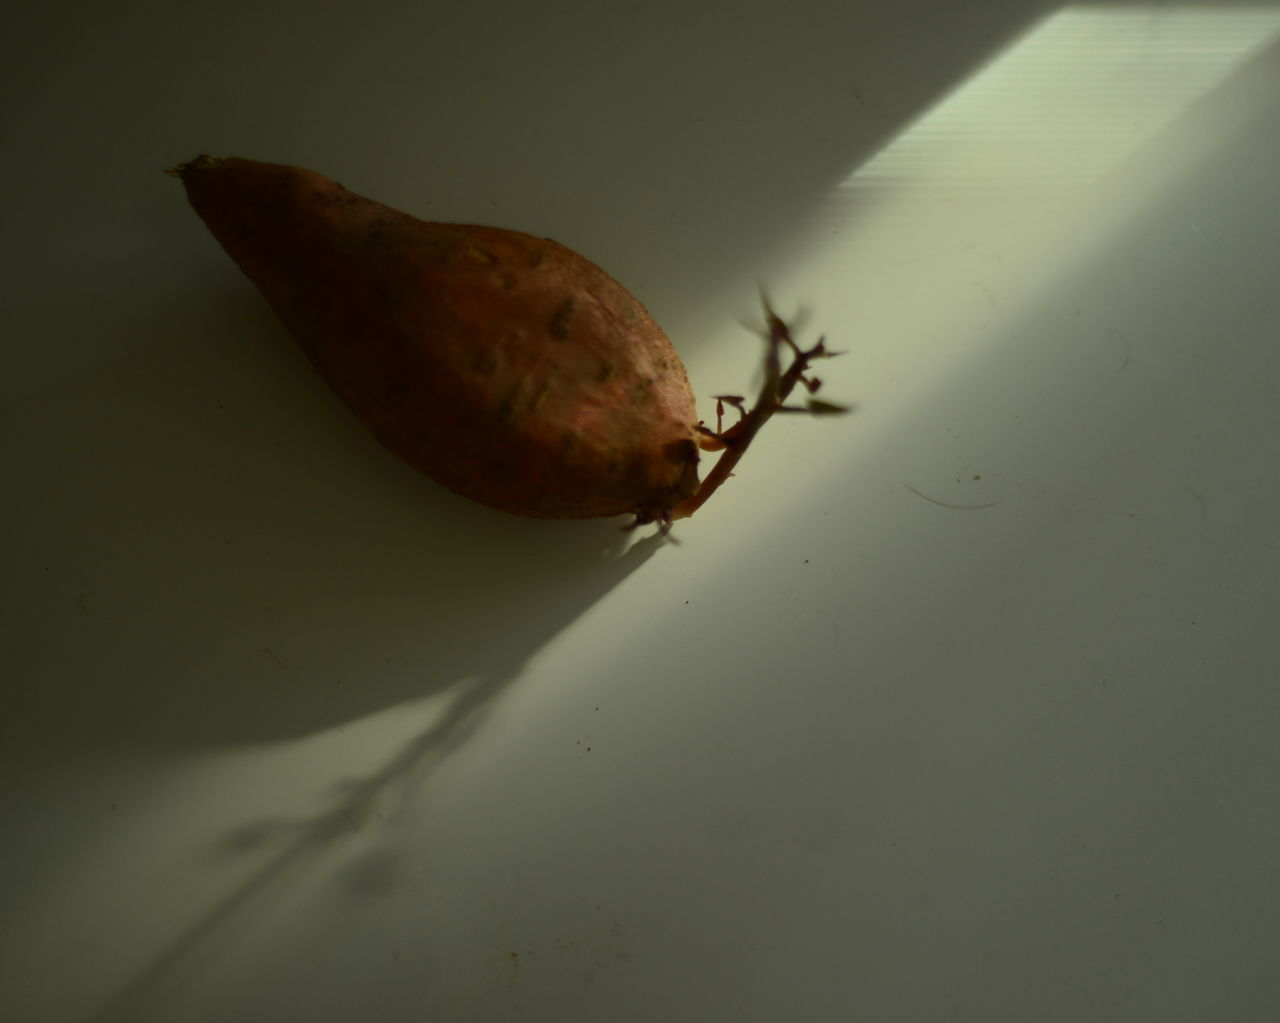 Animal Themes Animals In The Wild Brown Close-up Focus On Foreground Fragility Indoors  Insect Light And Shadow No People One Animal Sweet Potatoes Wildlife Zoology